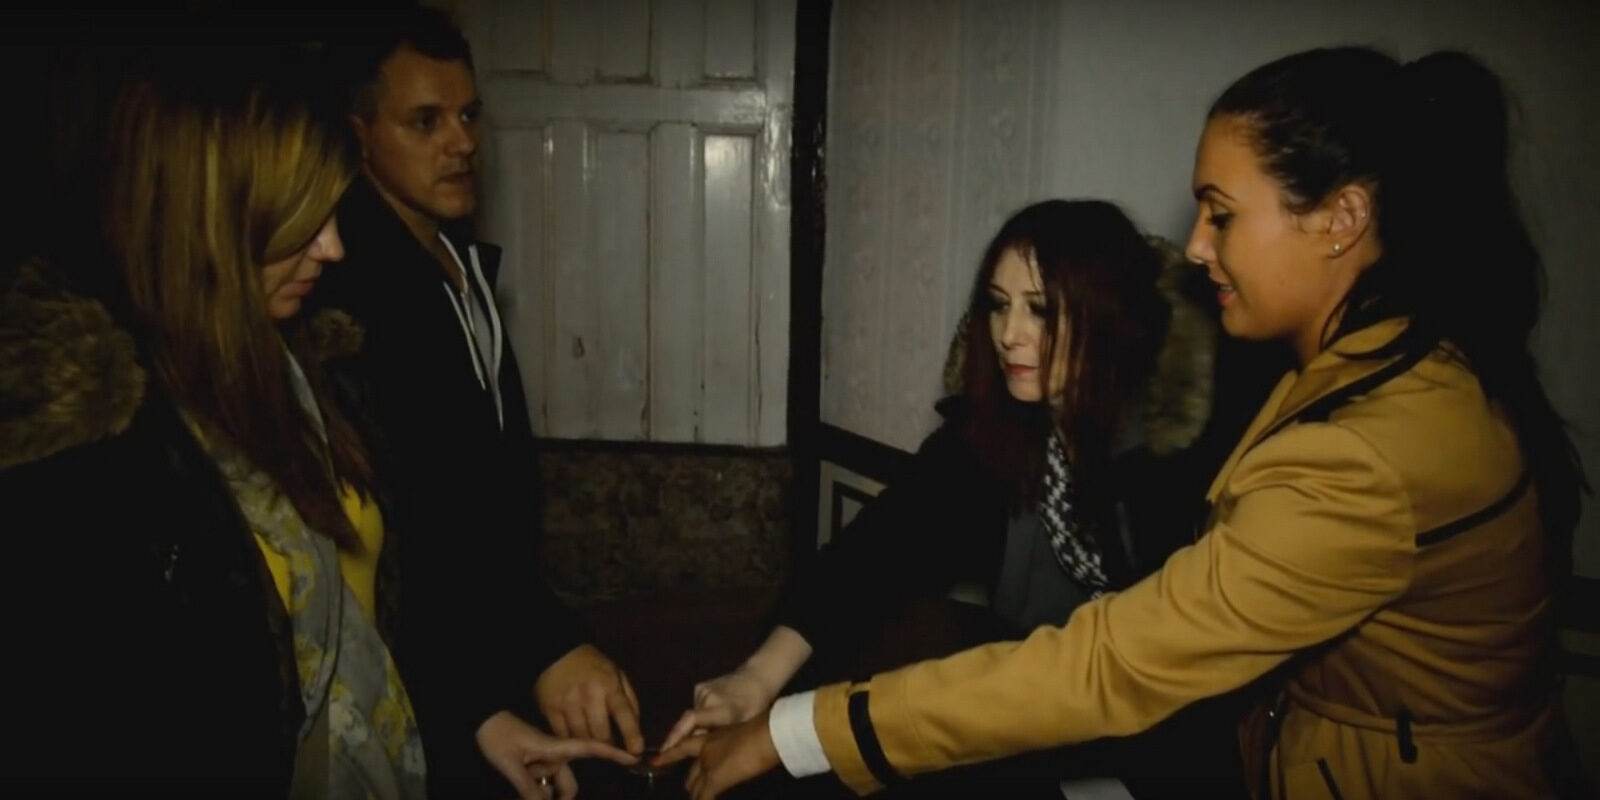 Richard offering help with the Paranormal in Wales Seance session in Pentre.